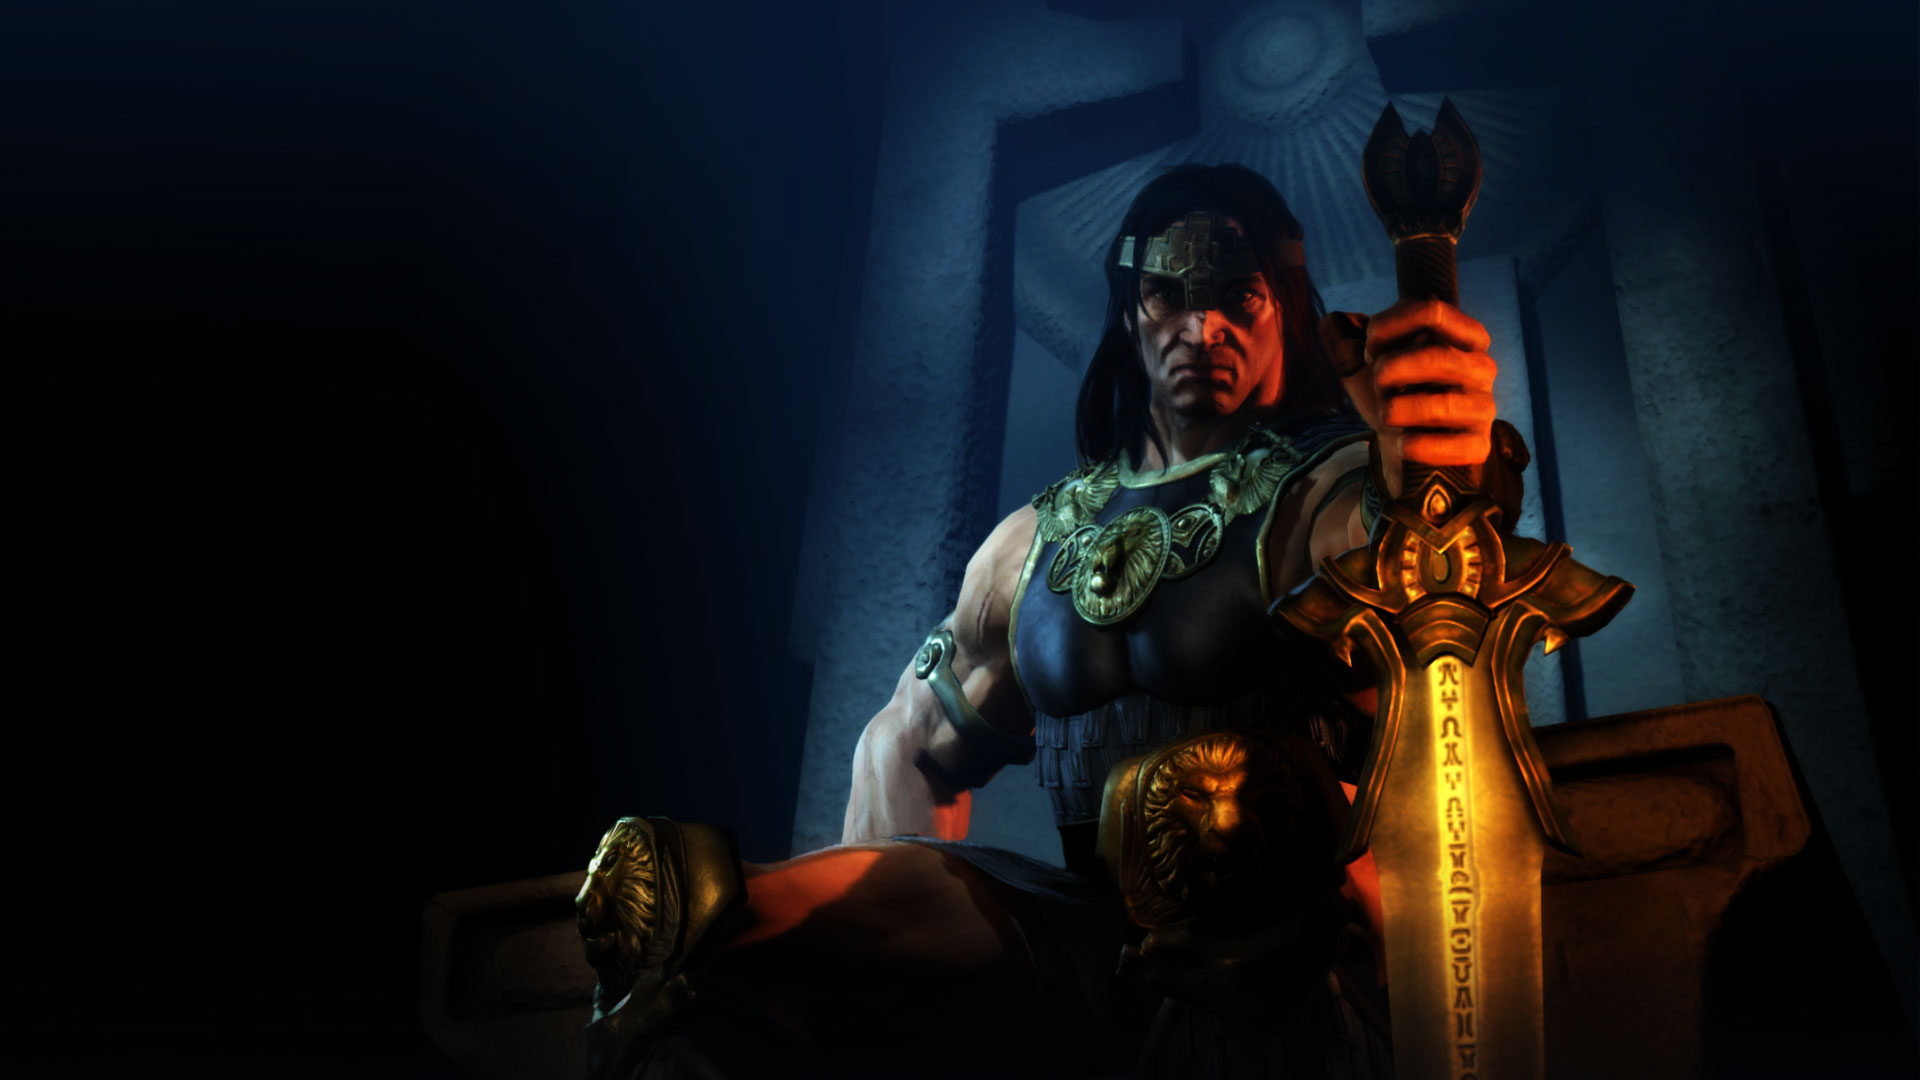 Age of Conan Wallpaper in 1920x1080 1920x1080